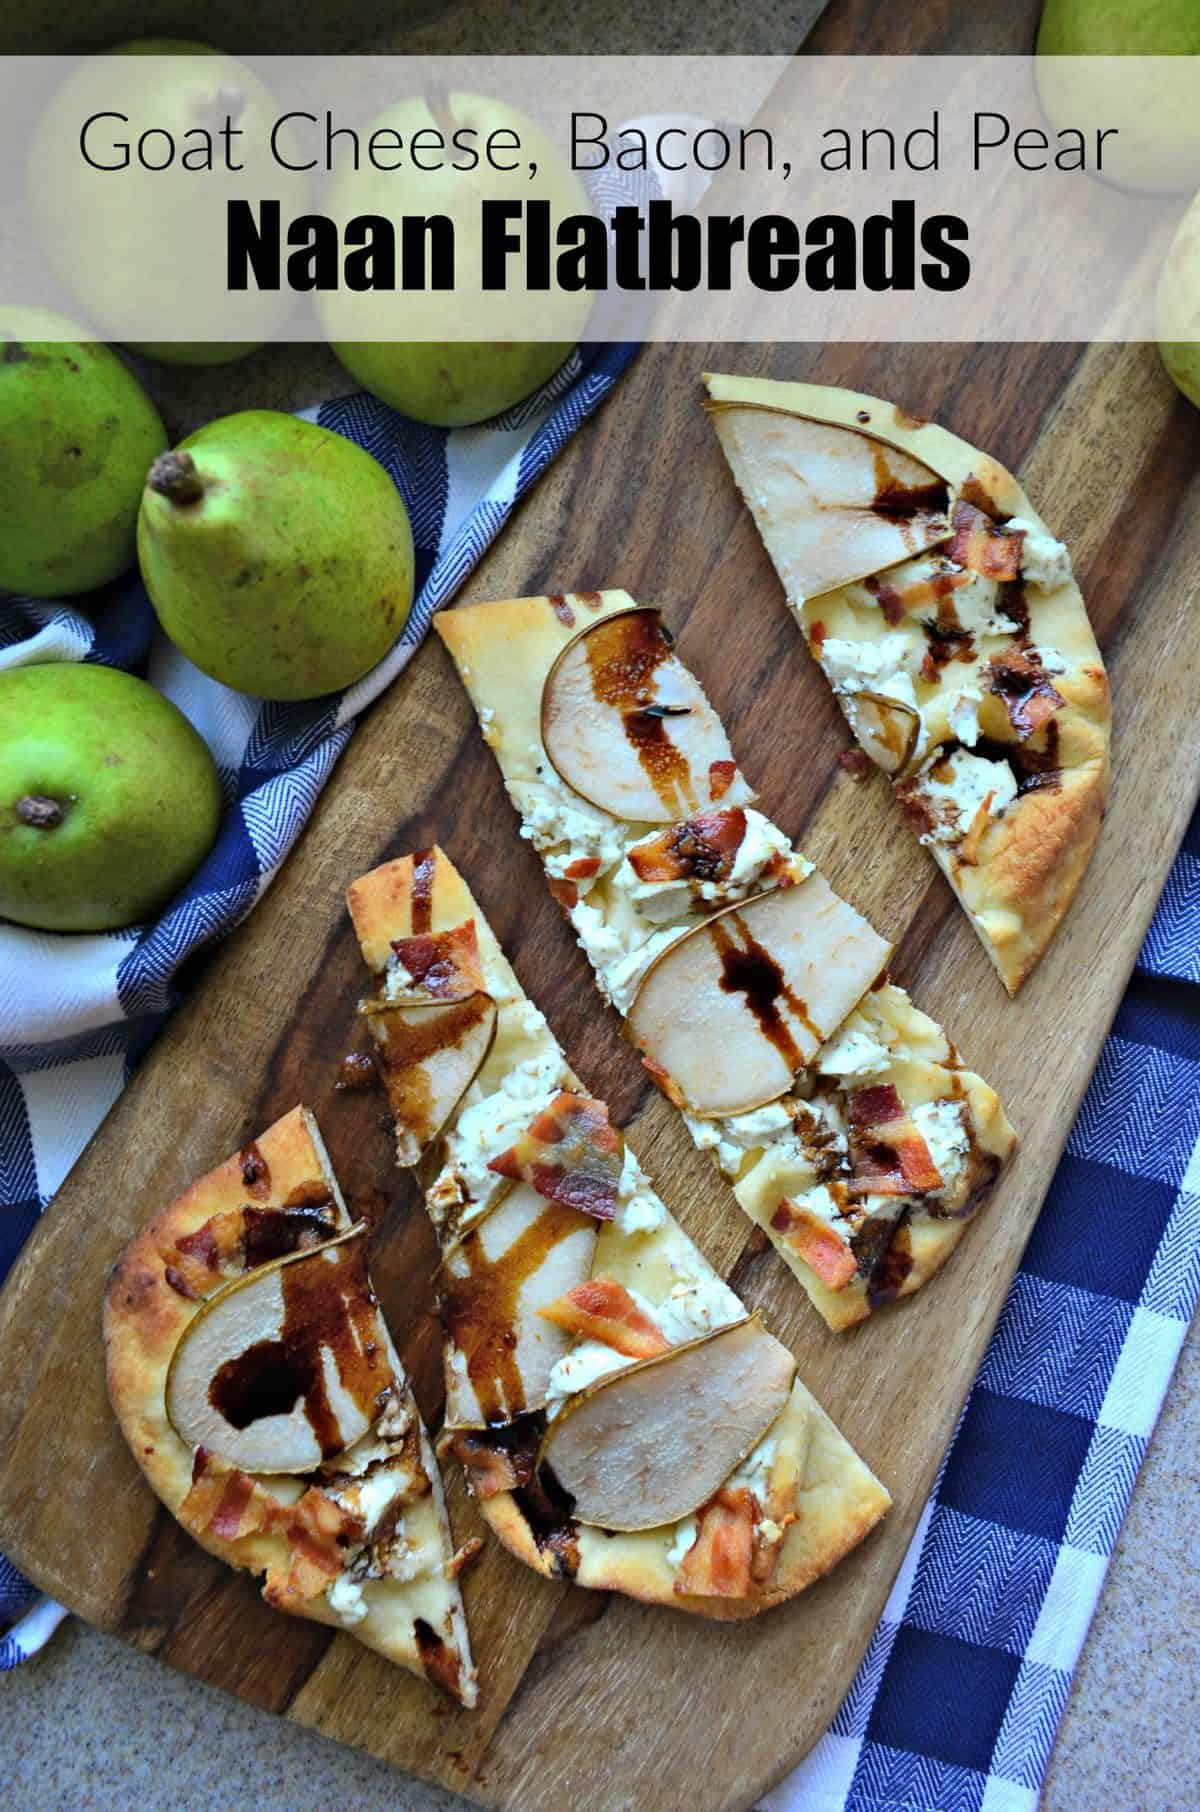 Goat Cheese, Bacon, and Pear slices on naan topped with brown sauce drizzled with title text.